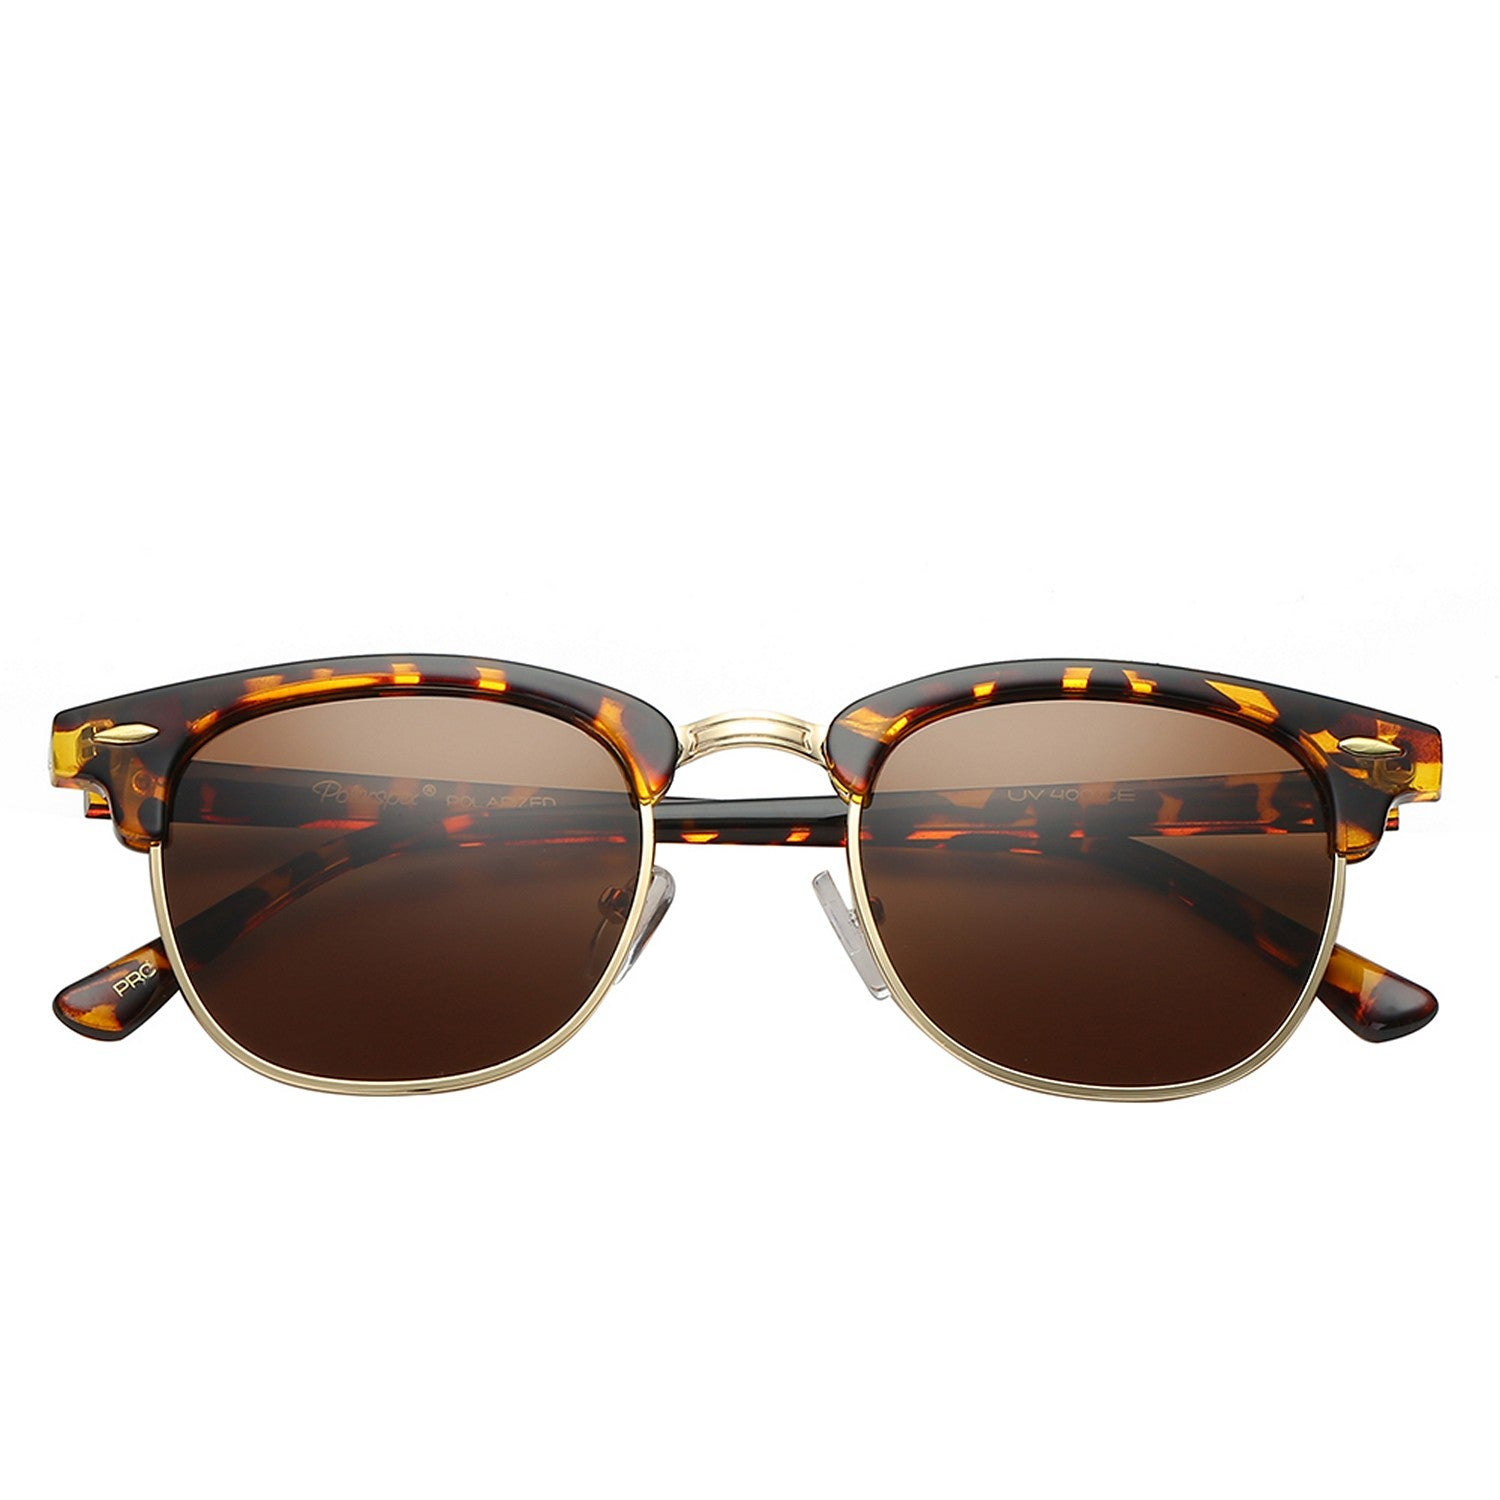 Polarspex Polarized Malcom Half Frame Semi-Rimless Style Unisex Sunglasses with Tortoise Brown Frames and Brown Lenses